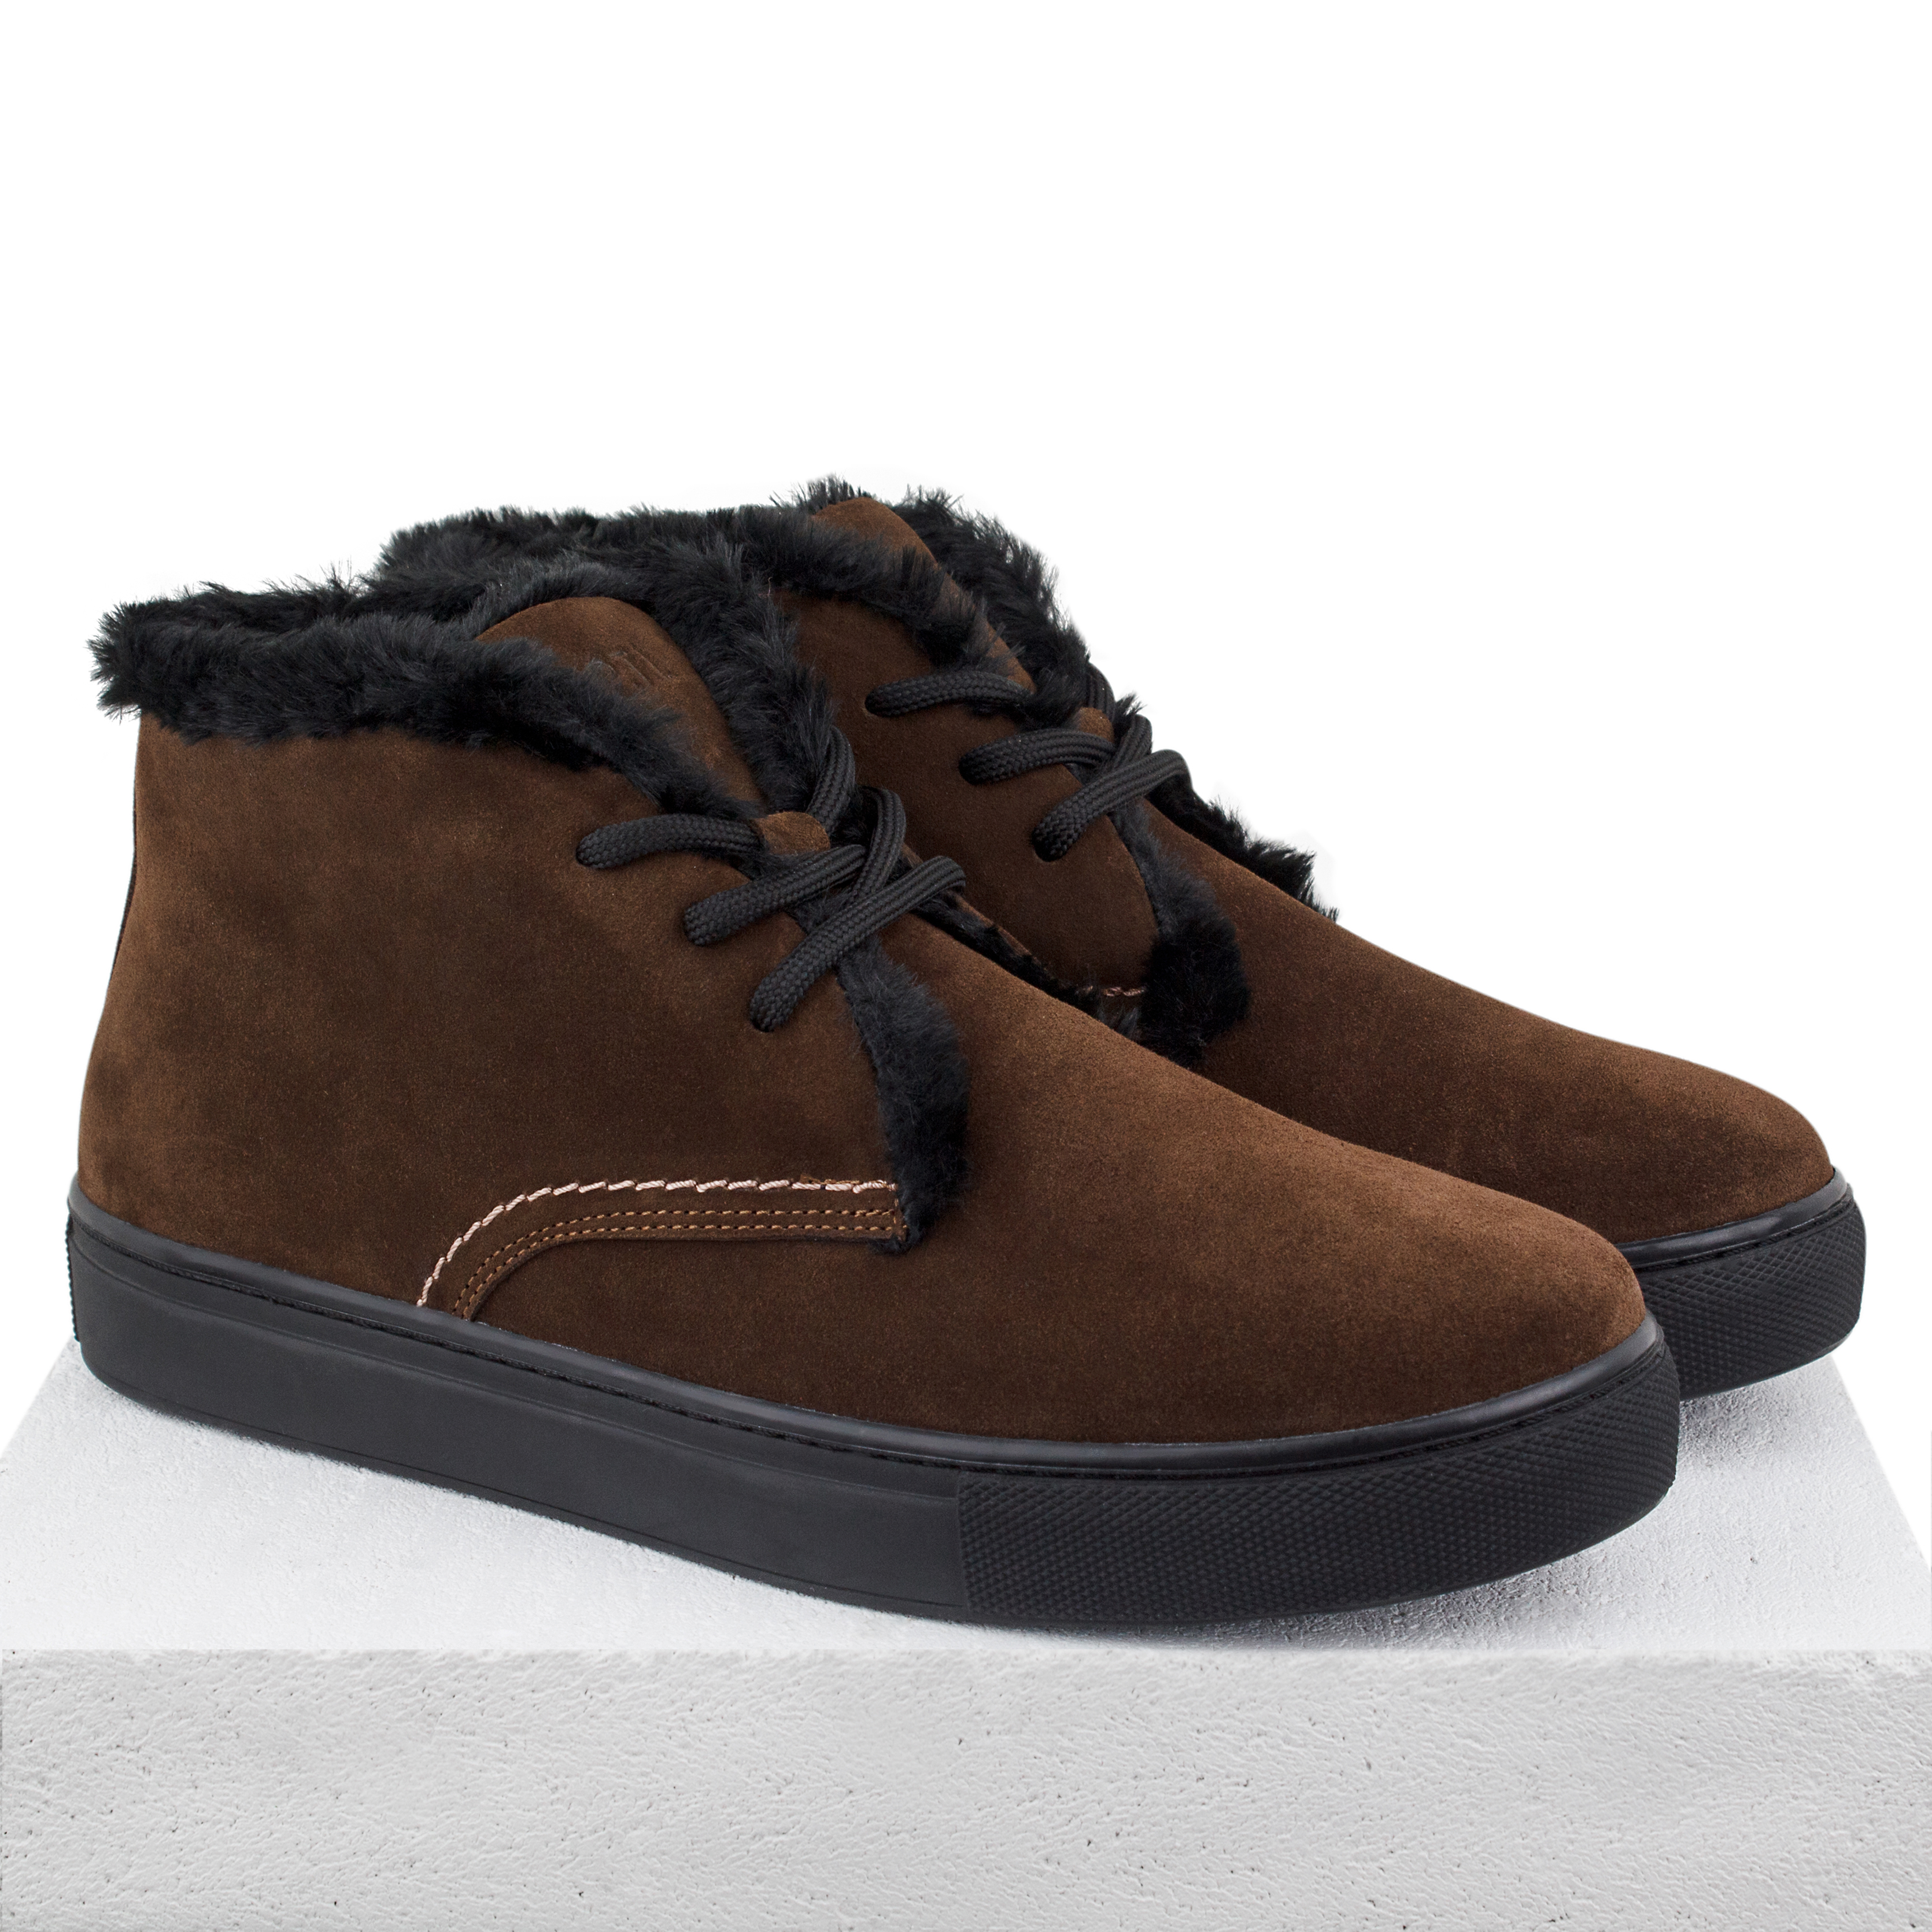 Man's boots made of natural suede Lapti brown with a woolen heater